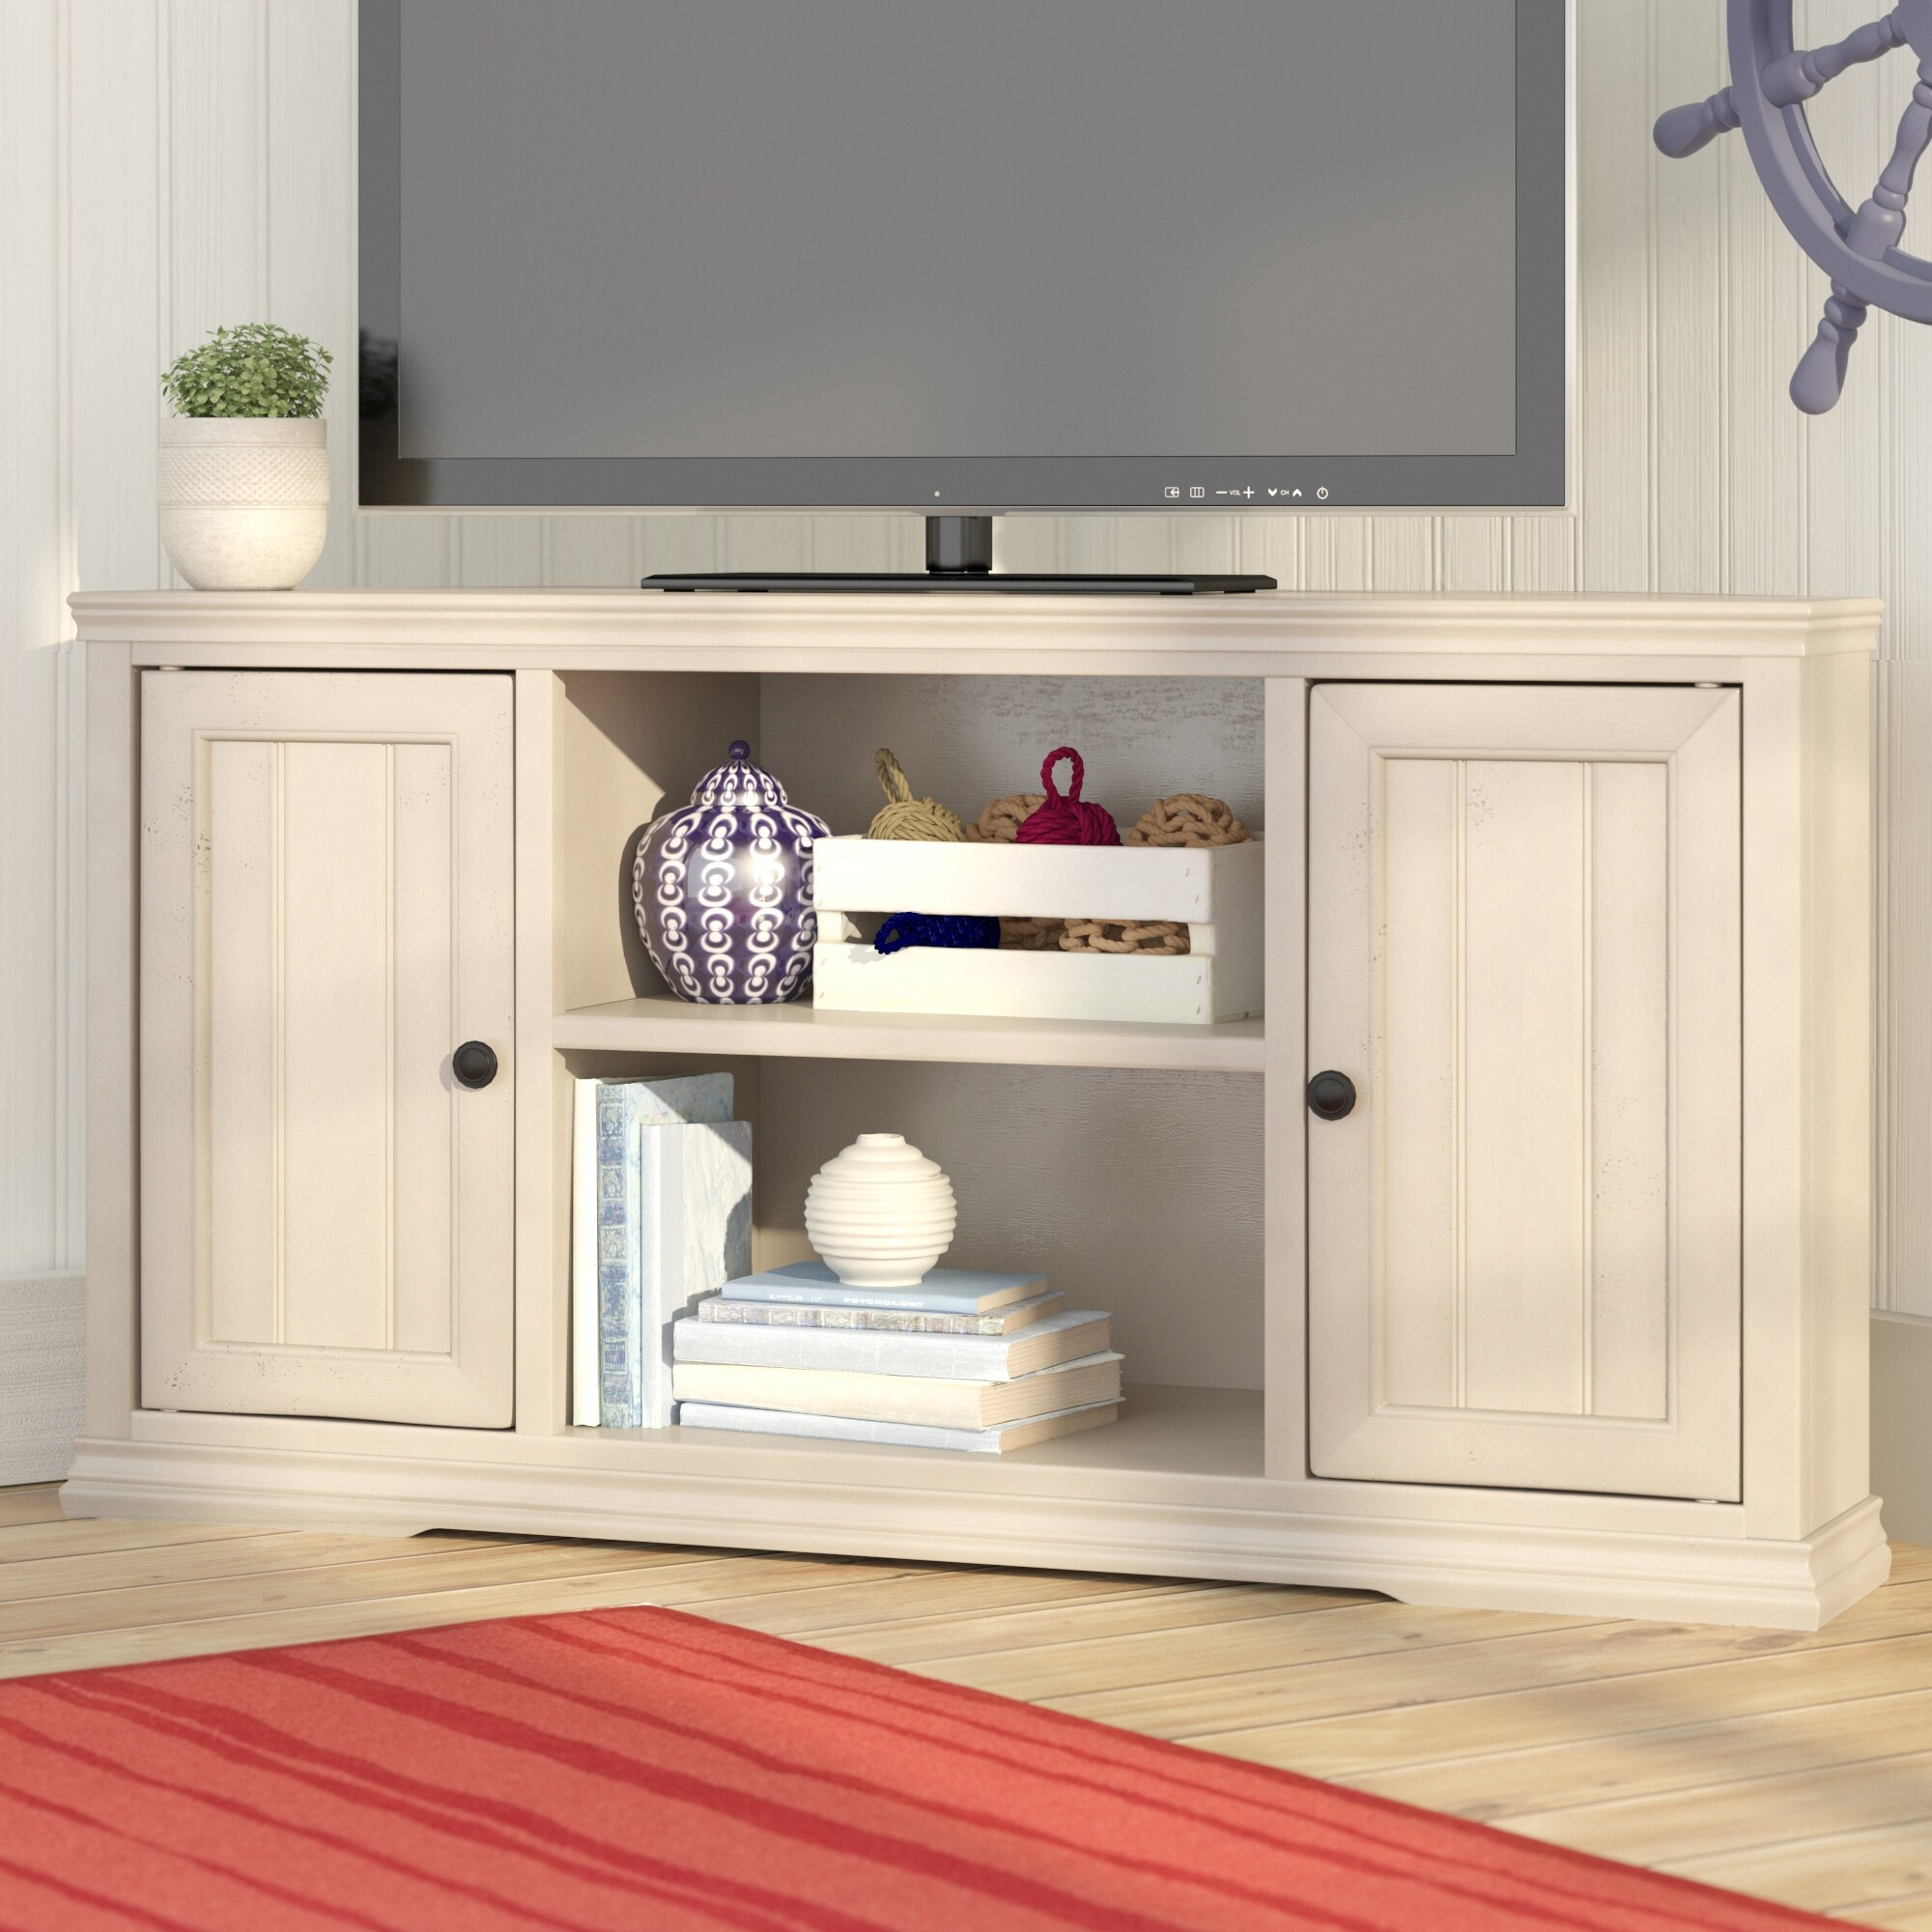 makeover mart creative shehnaaiusa wal corner design shelf tv